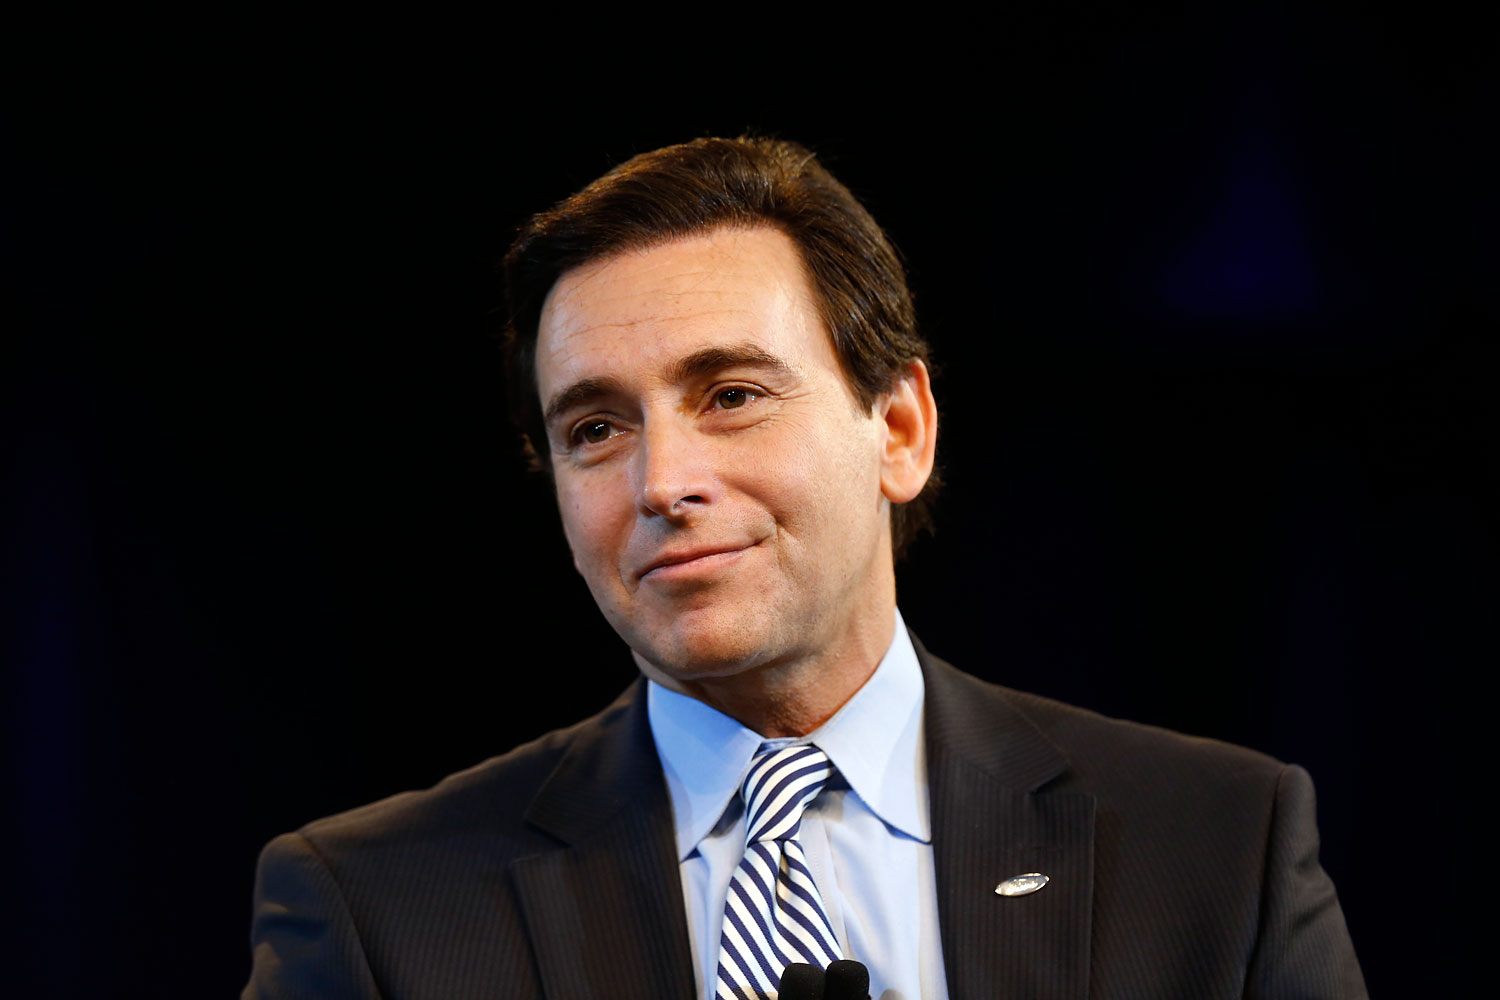 Ford Motor Company Chief Operating Officer Mark Fields speaks during a news conference in Dearborn, Mich., May 1, 2014.